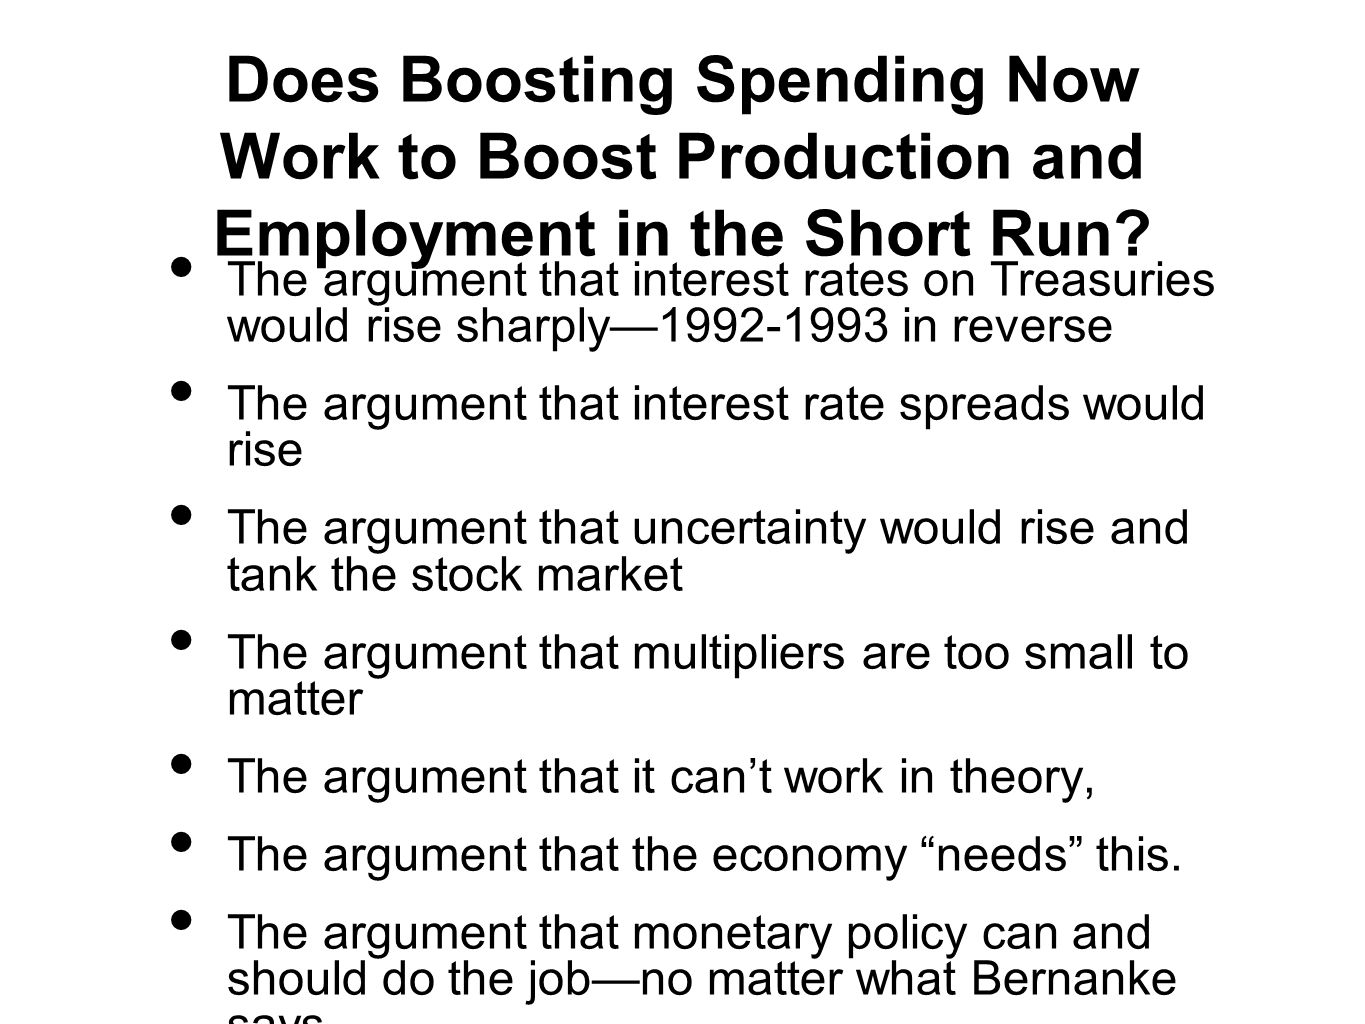 Does Boosting Spending Now Work to Boost Production and Employment in the Short Run.